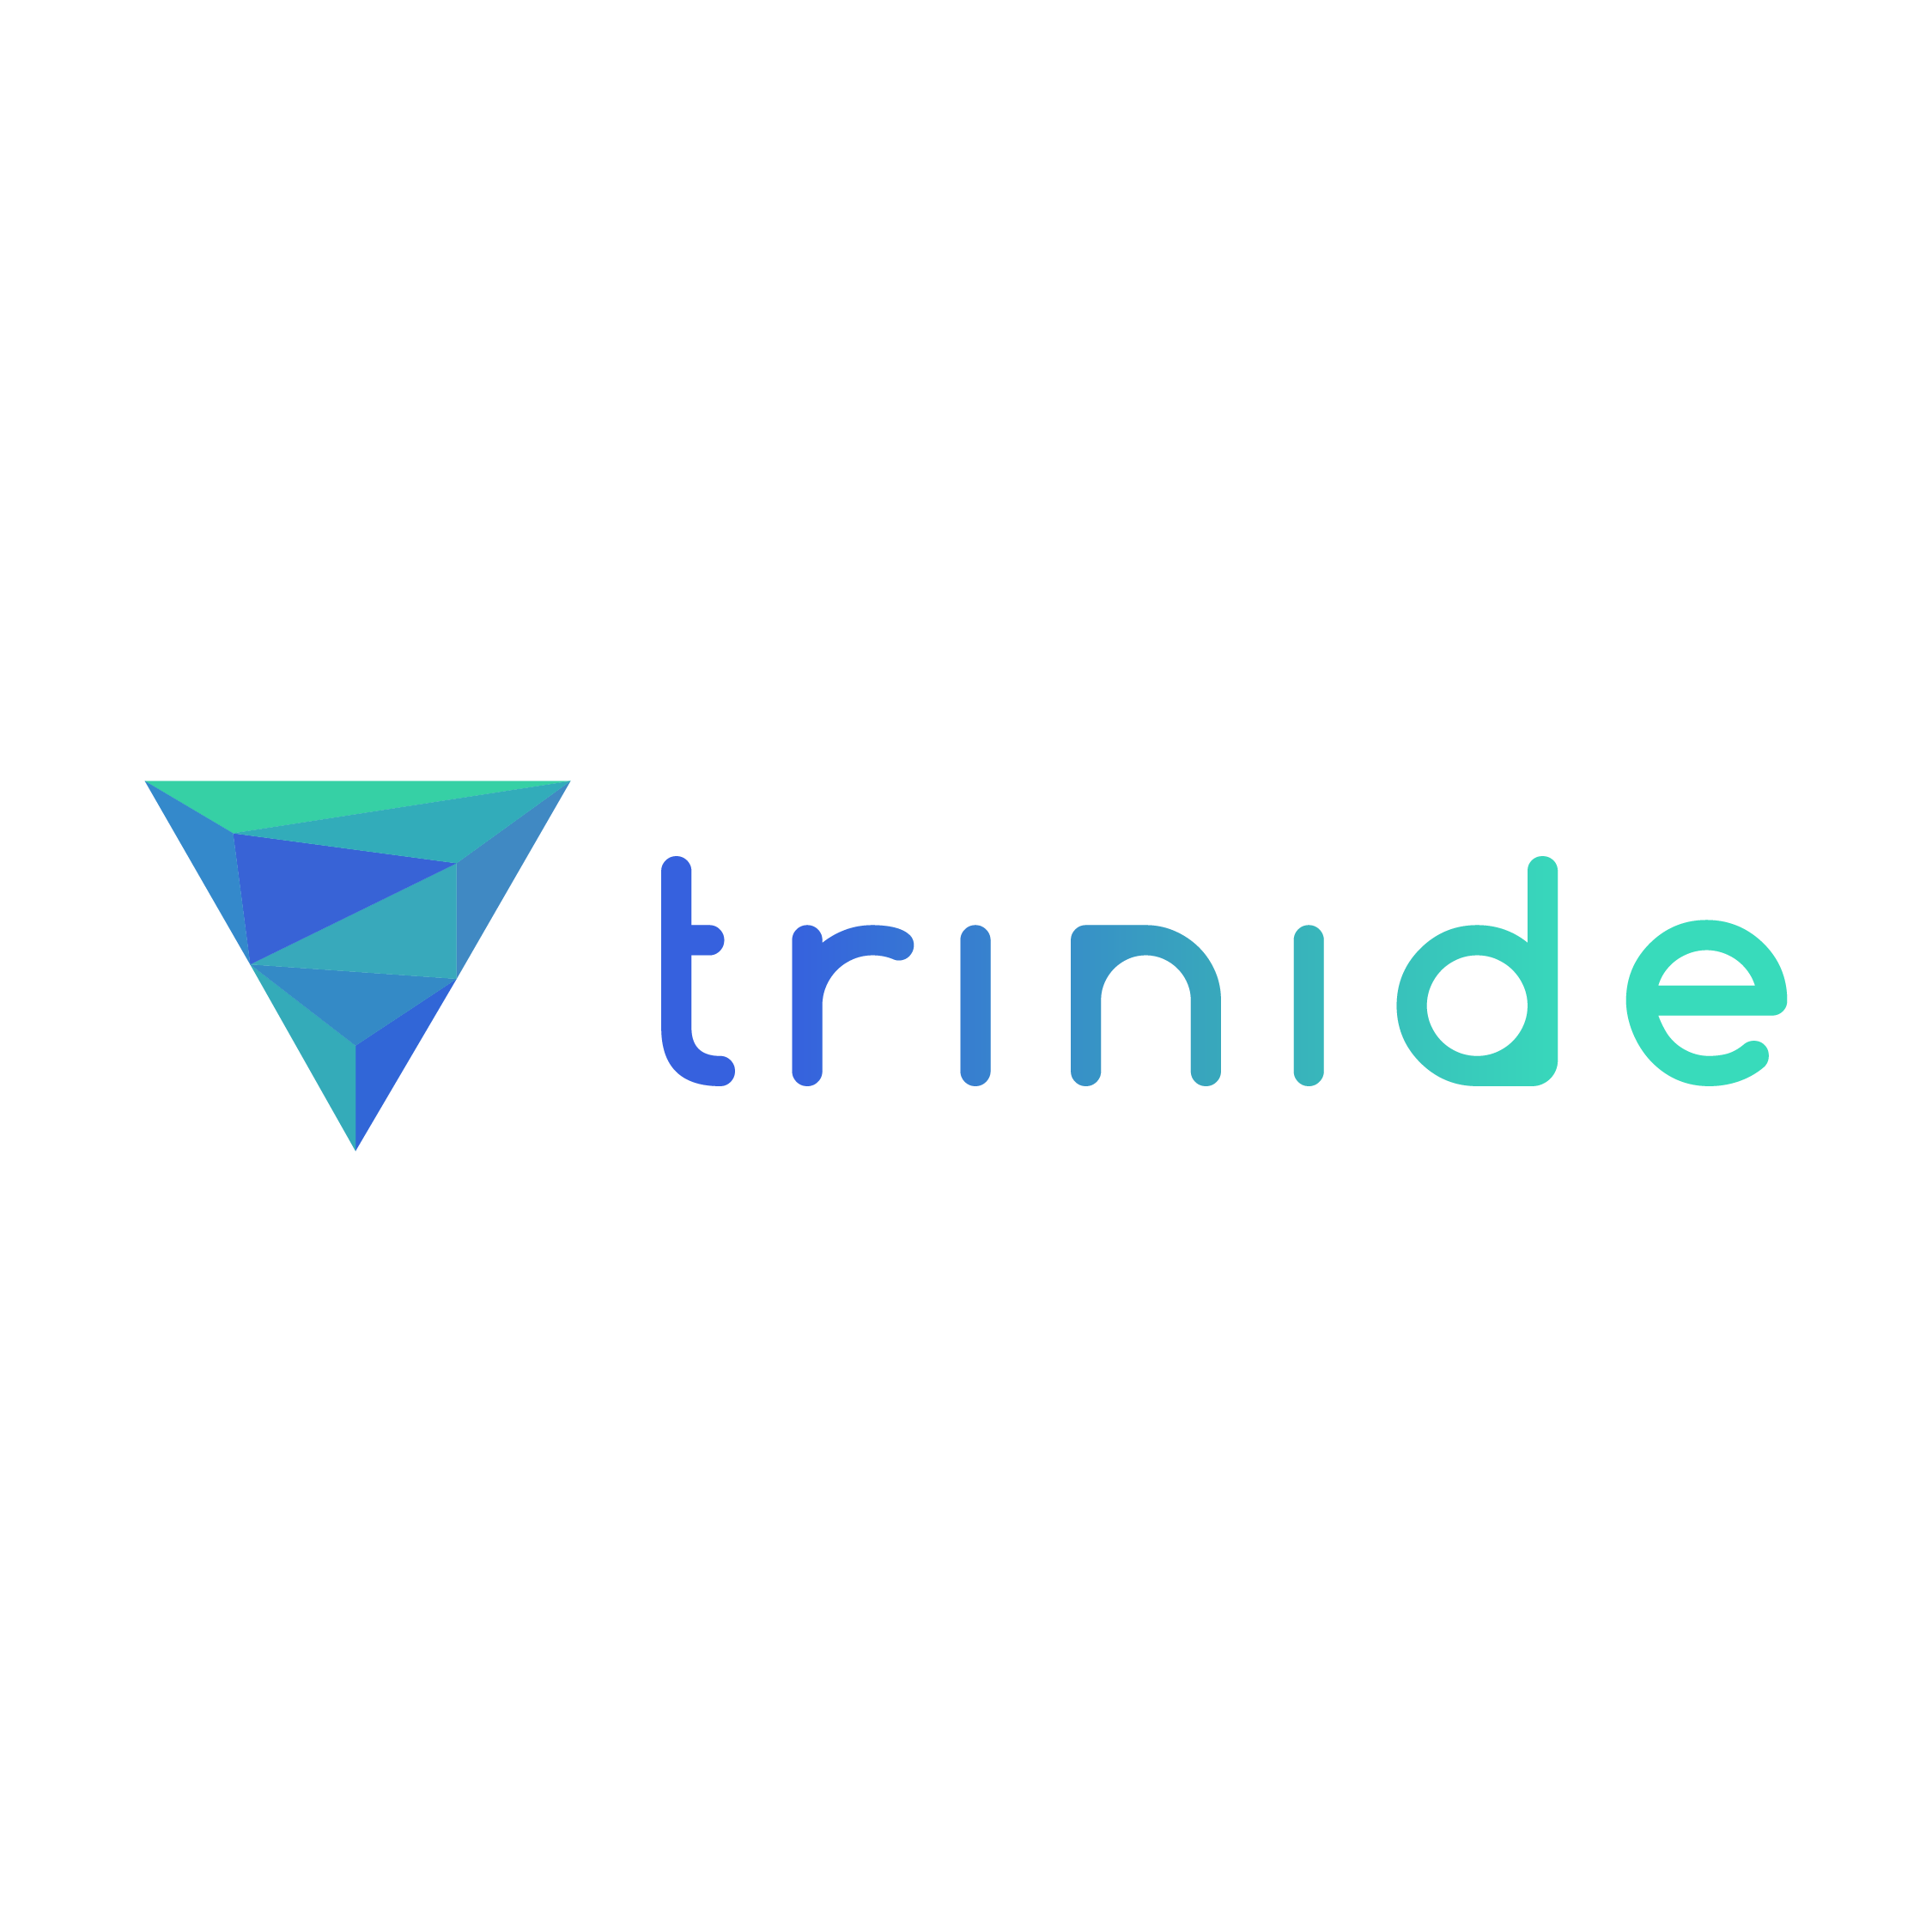 Trinide-01.png